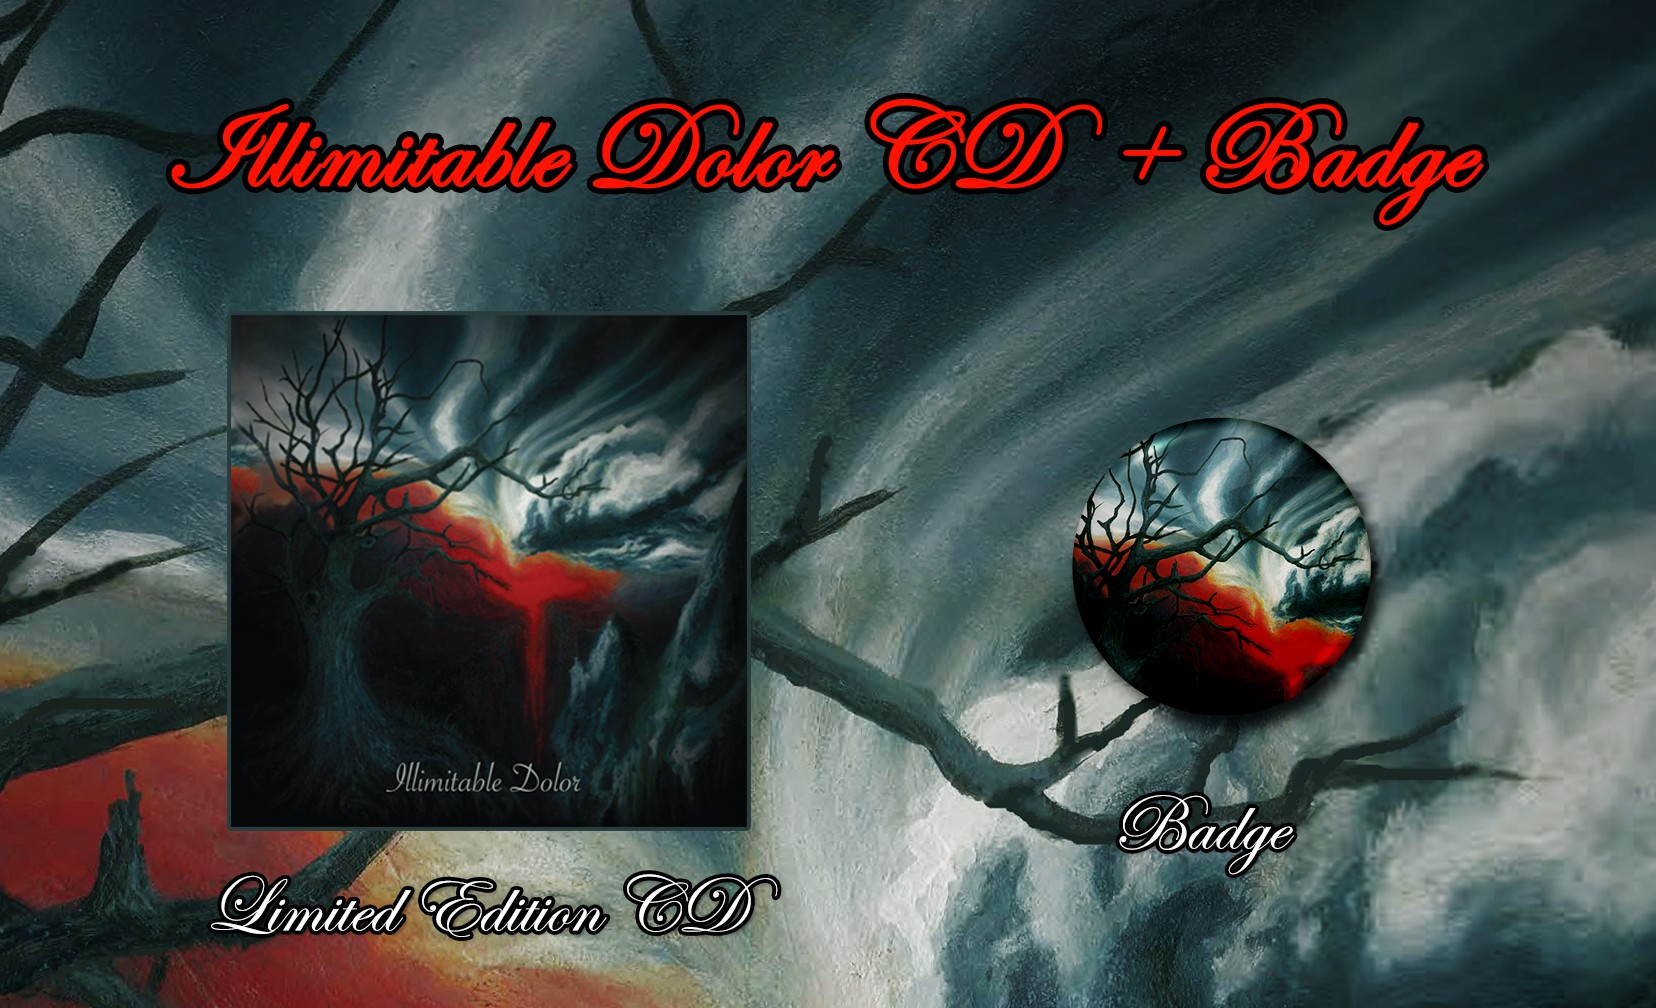 Illimitable Dolor (Australia) - Self-titled CD